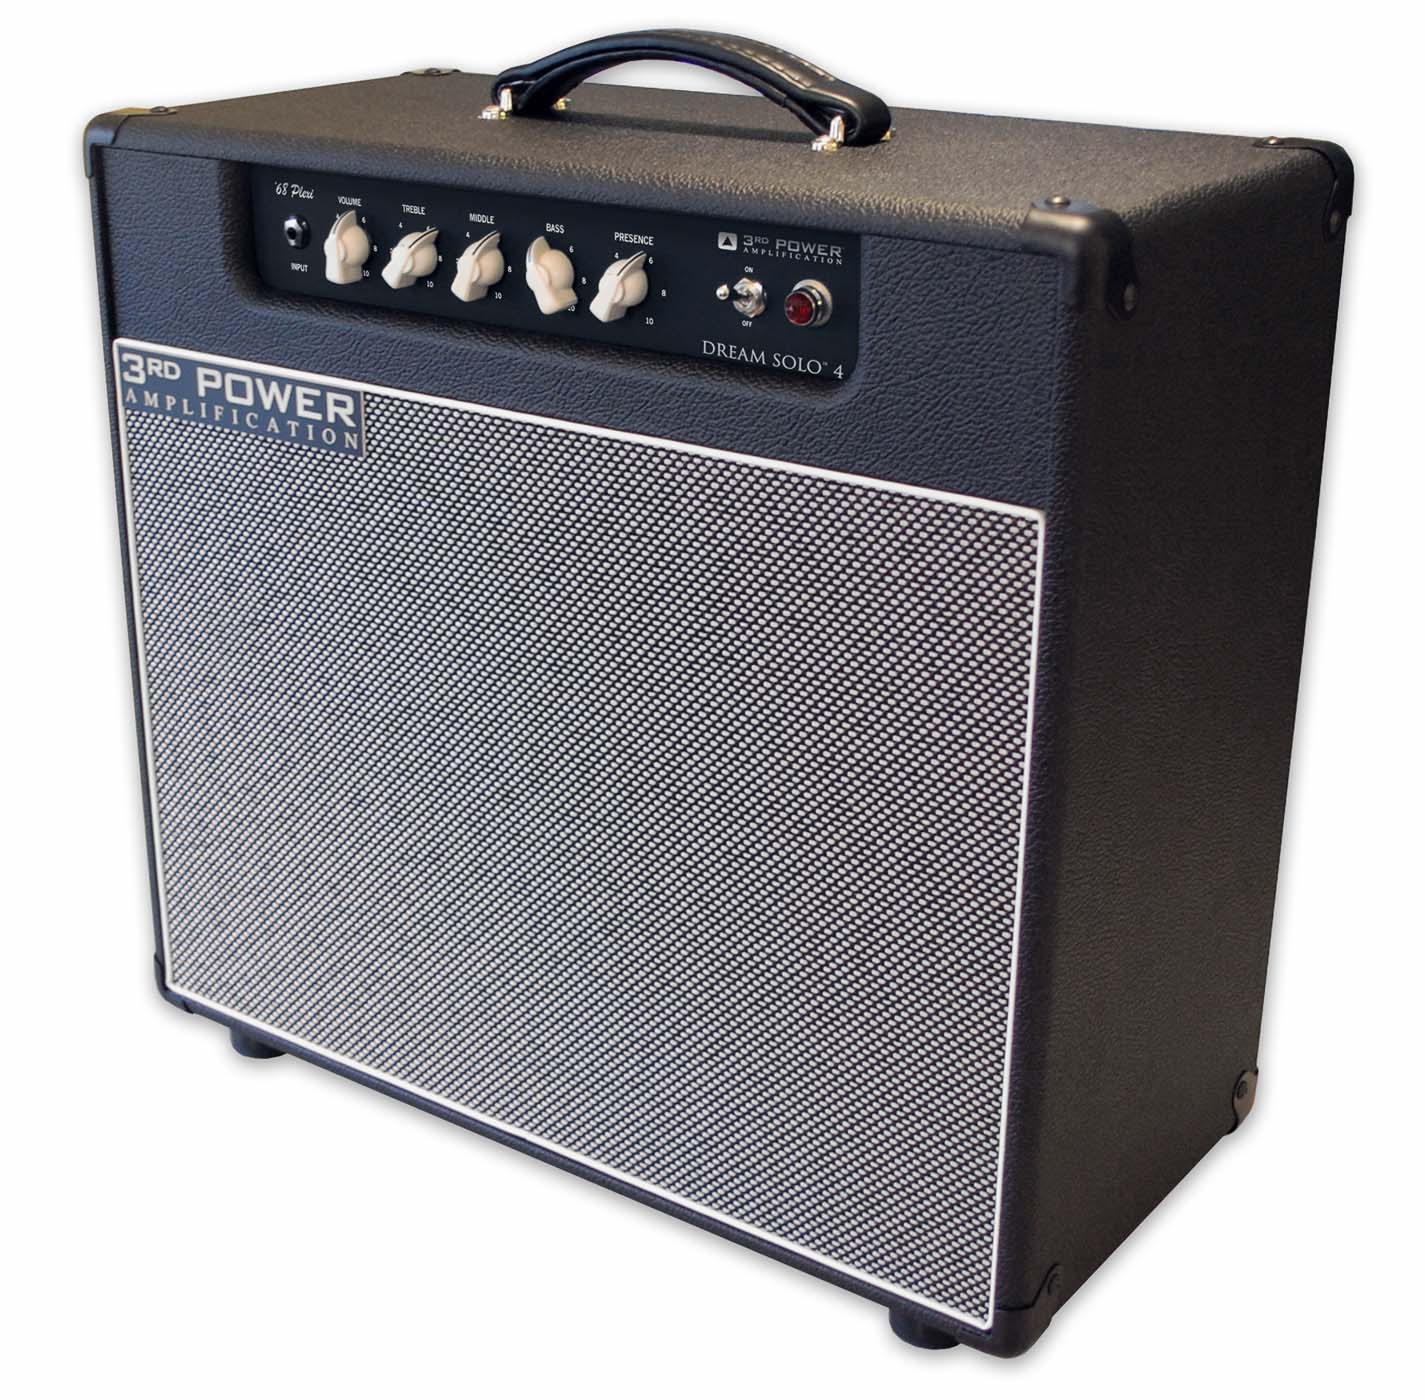 3rd Power Dream Solo Series amps